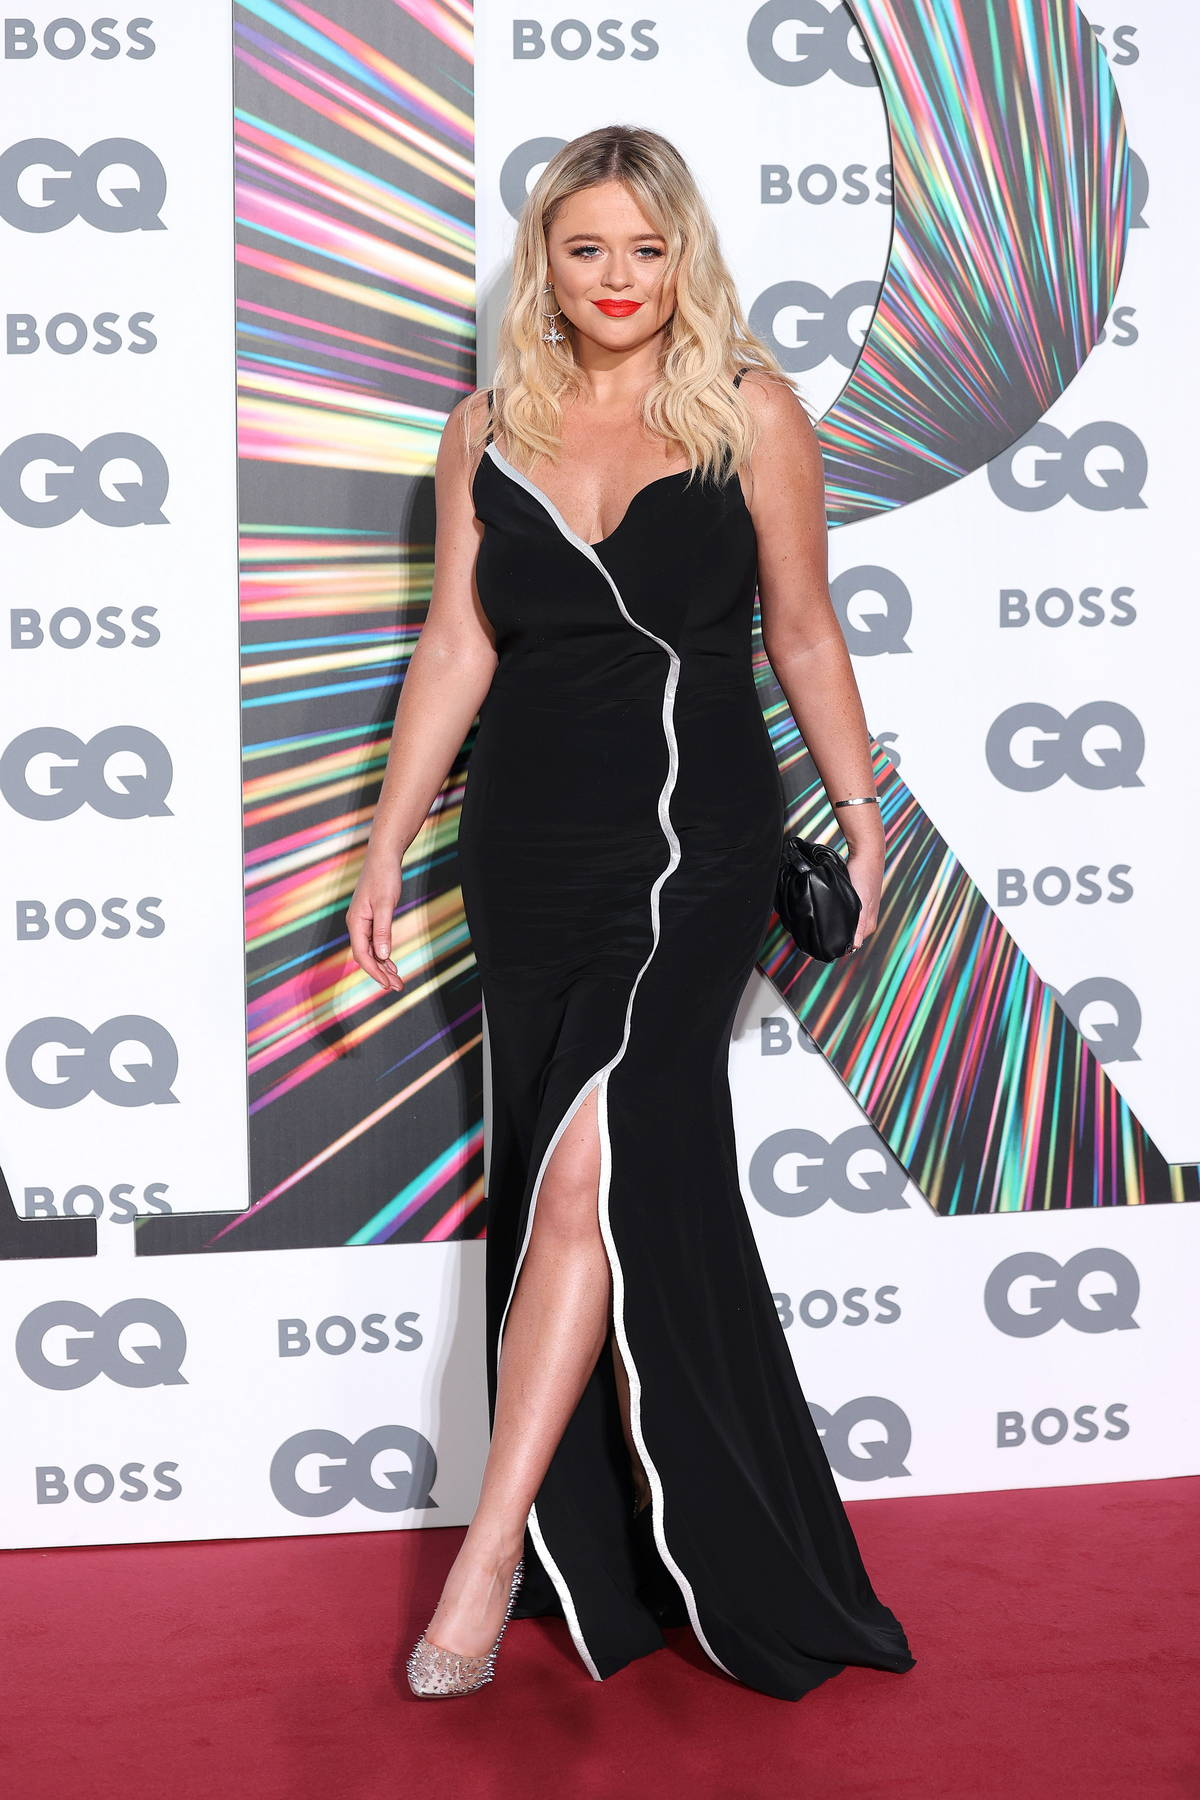 Emily Atack attends the GQ Men Of The Year Awards 2021 at the Tate Modern in London, UK